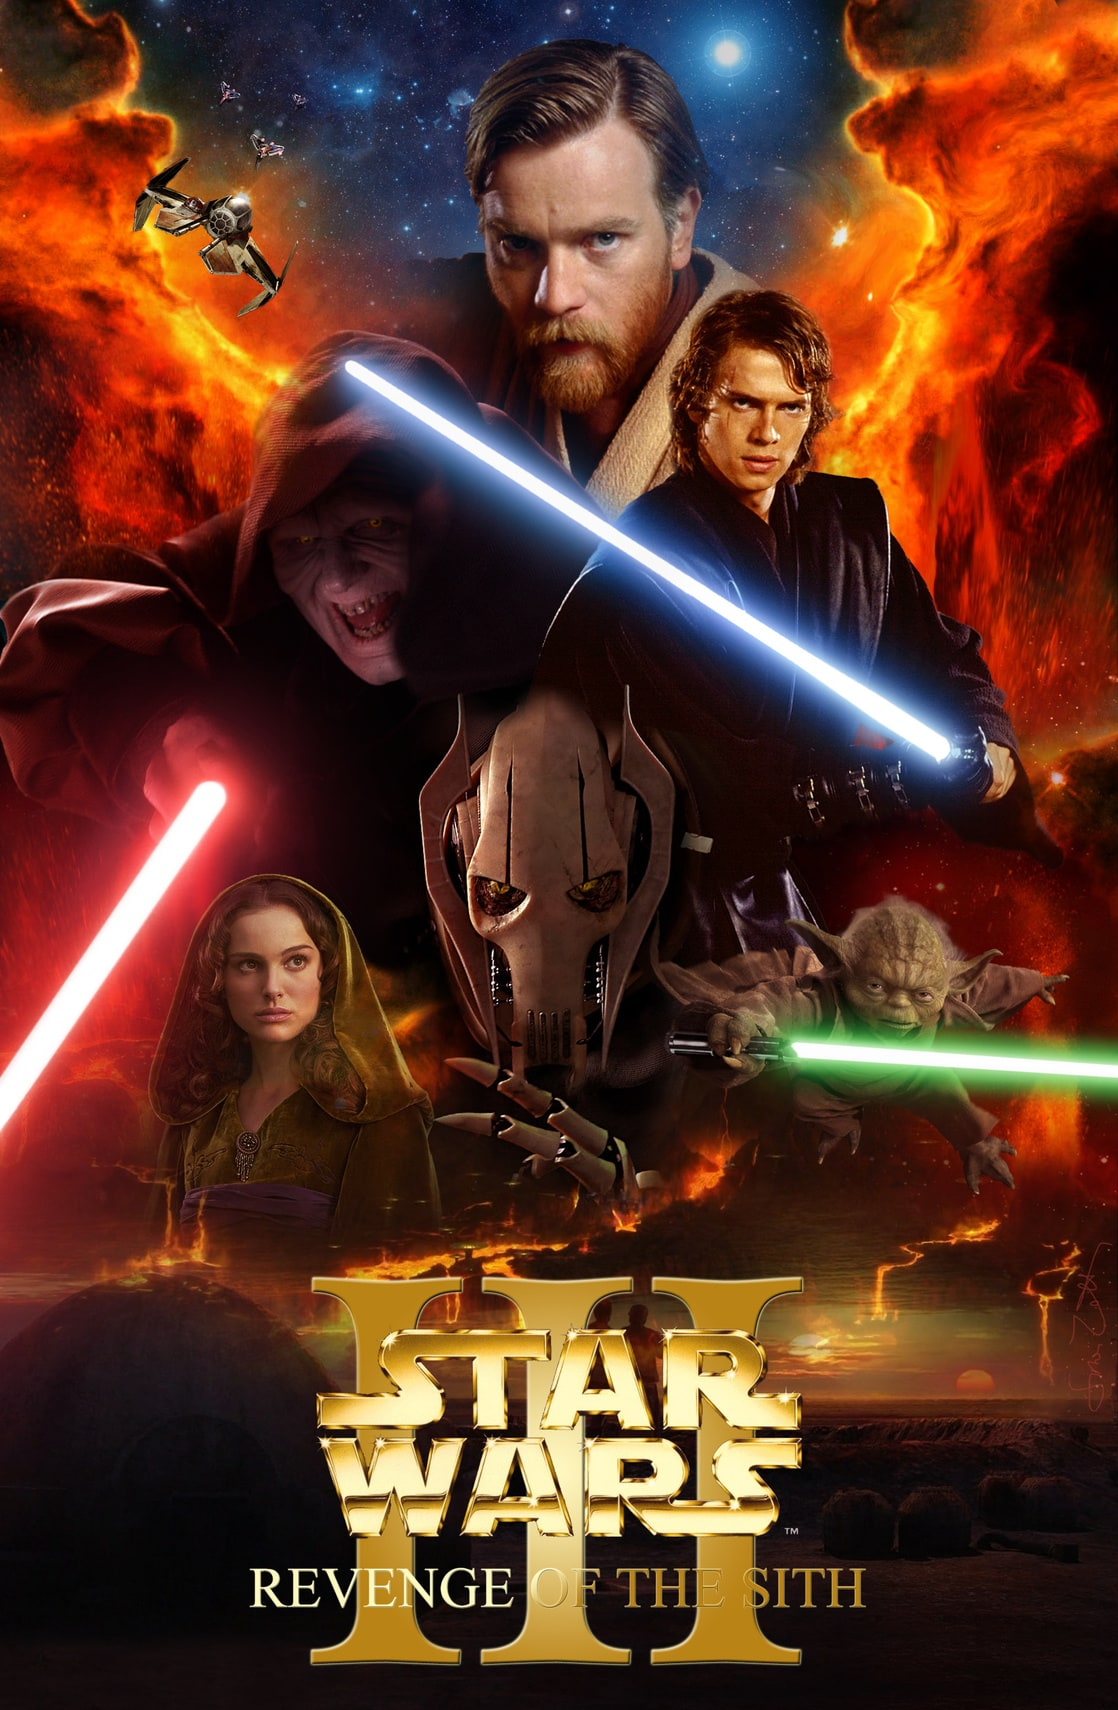 Picture Of Star Wars Episode Iii Revenge Of The Sith